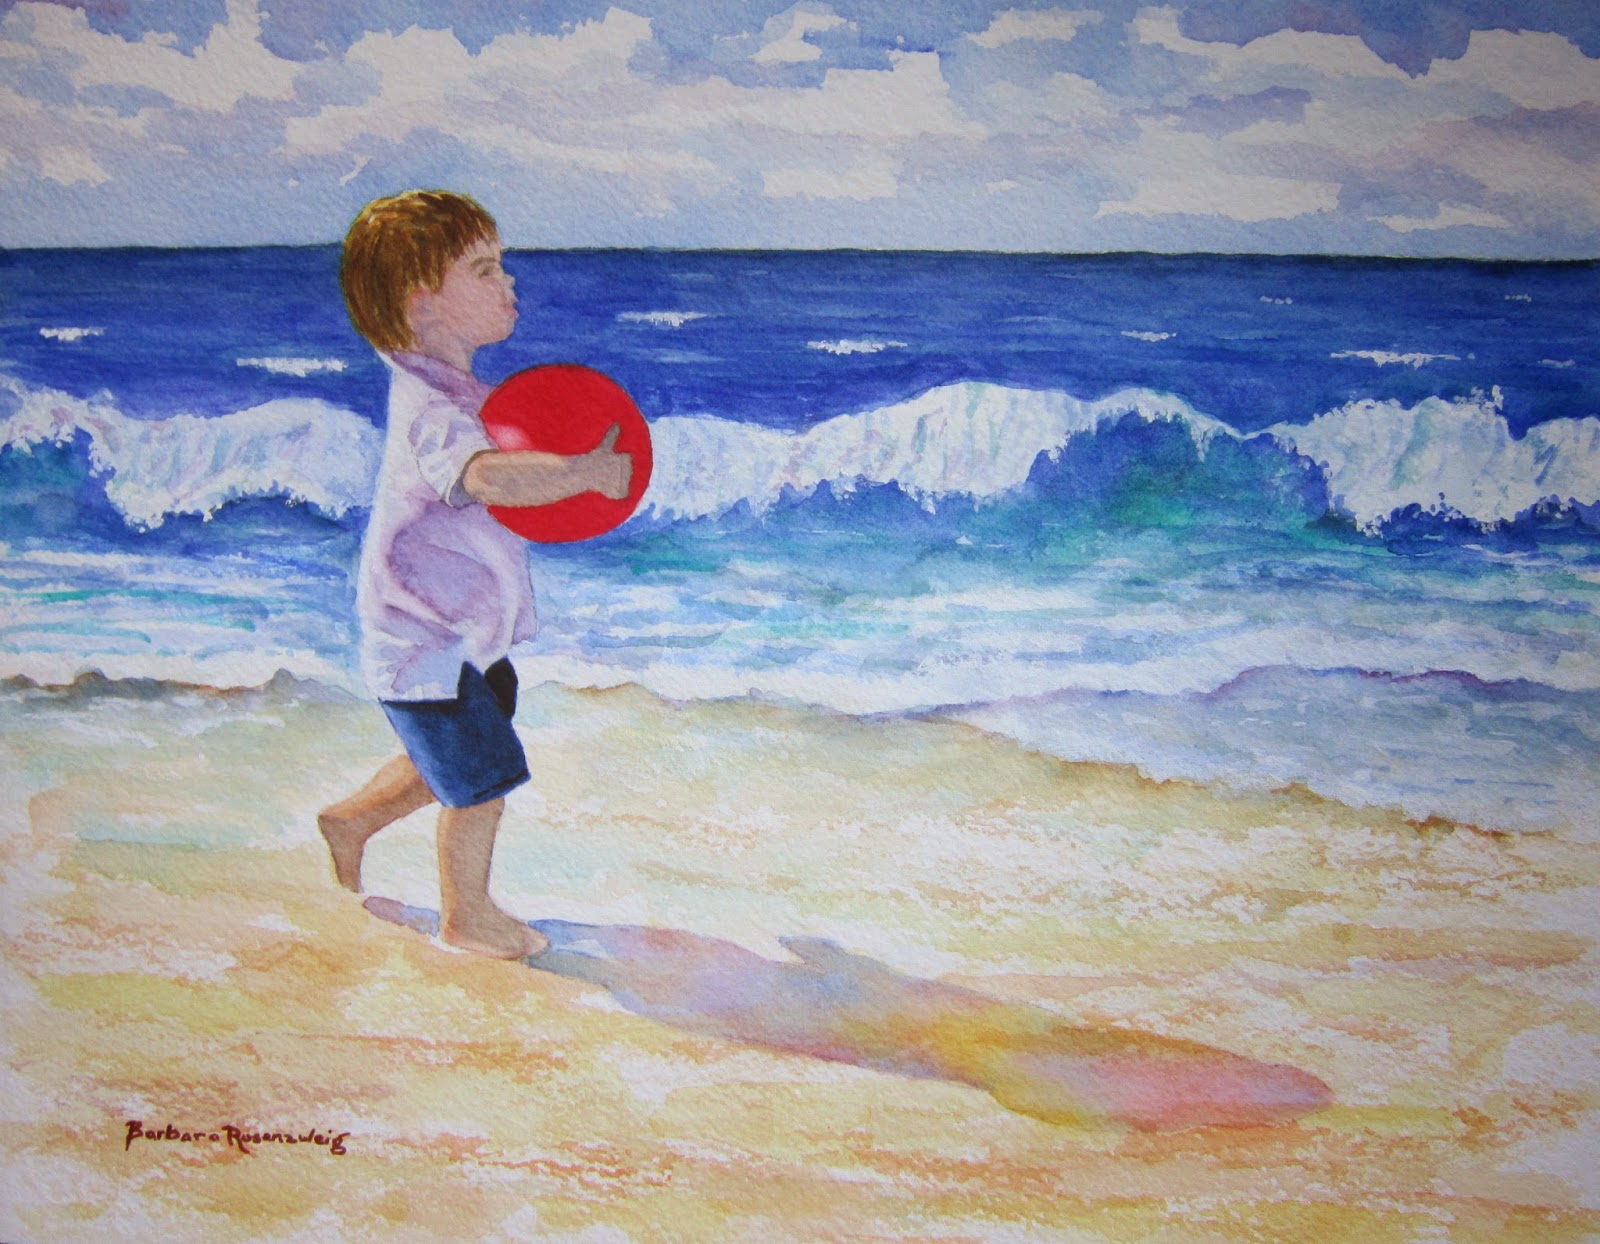 https://www.etsy.com/listing/196109345/beach-boy-red-ball-seashore-art-painting?